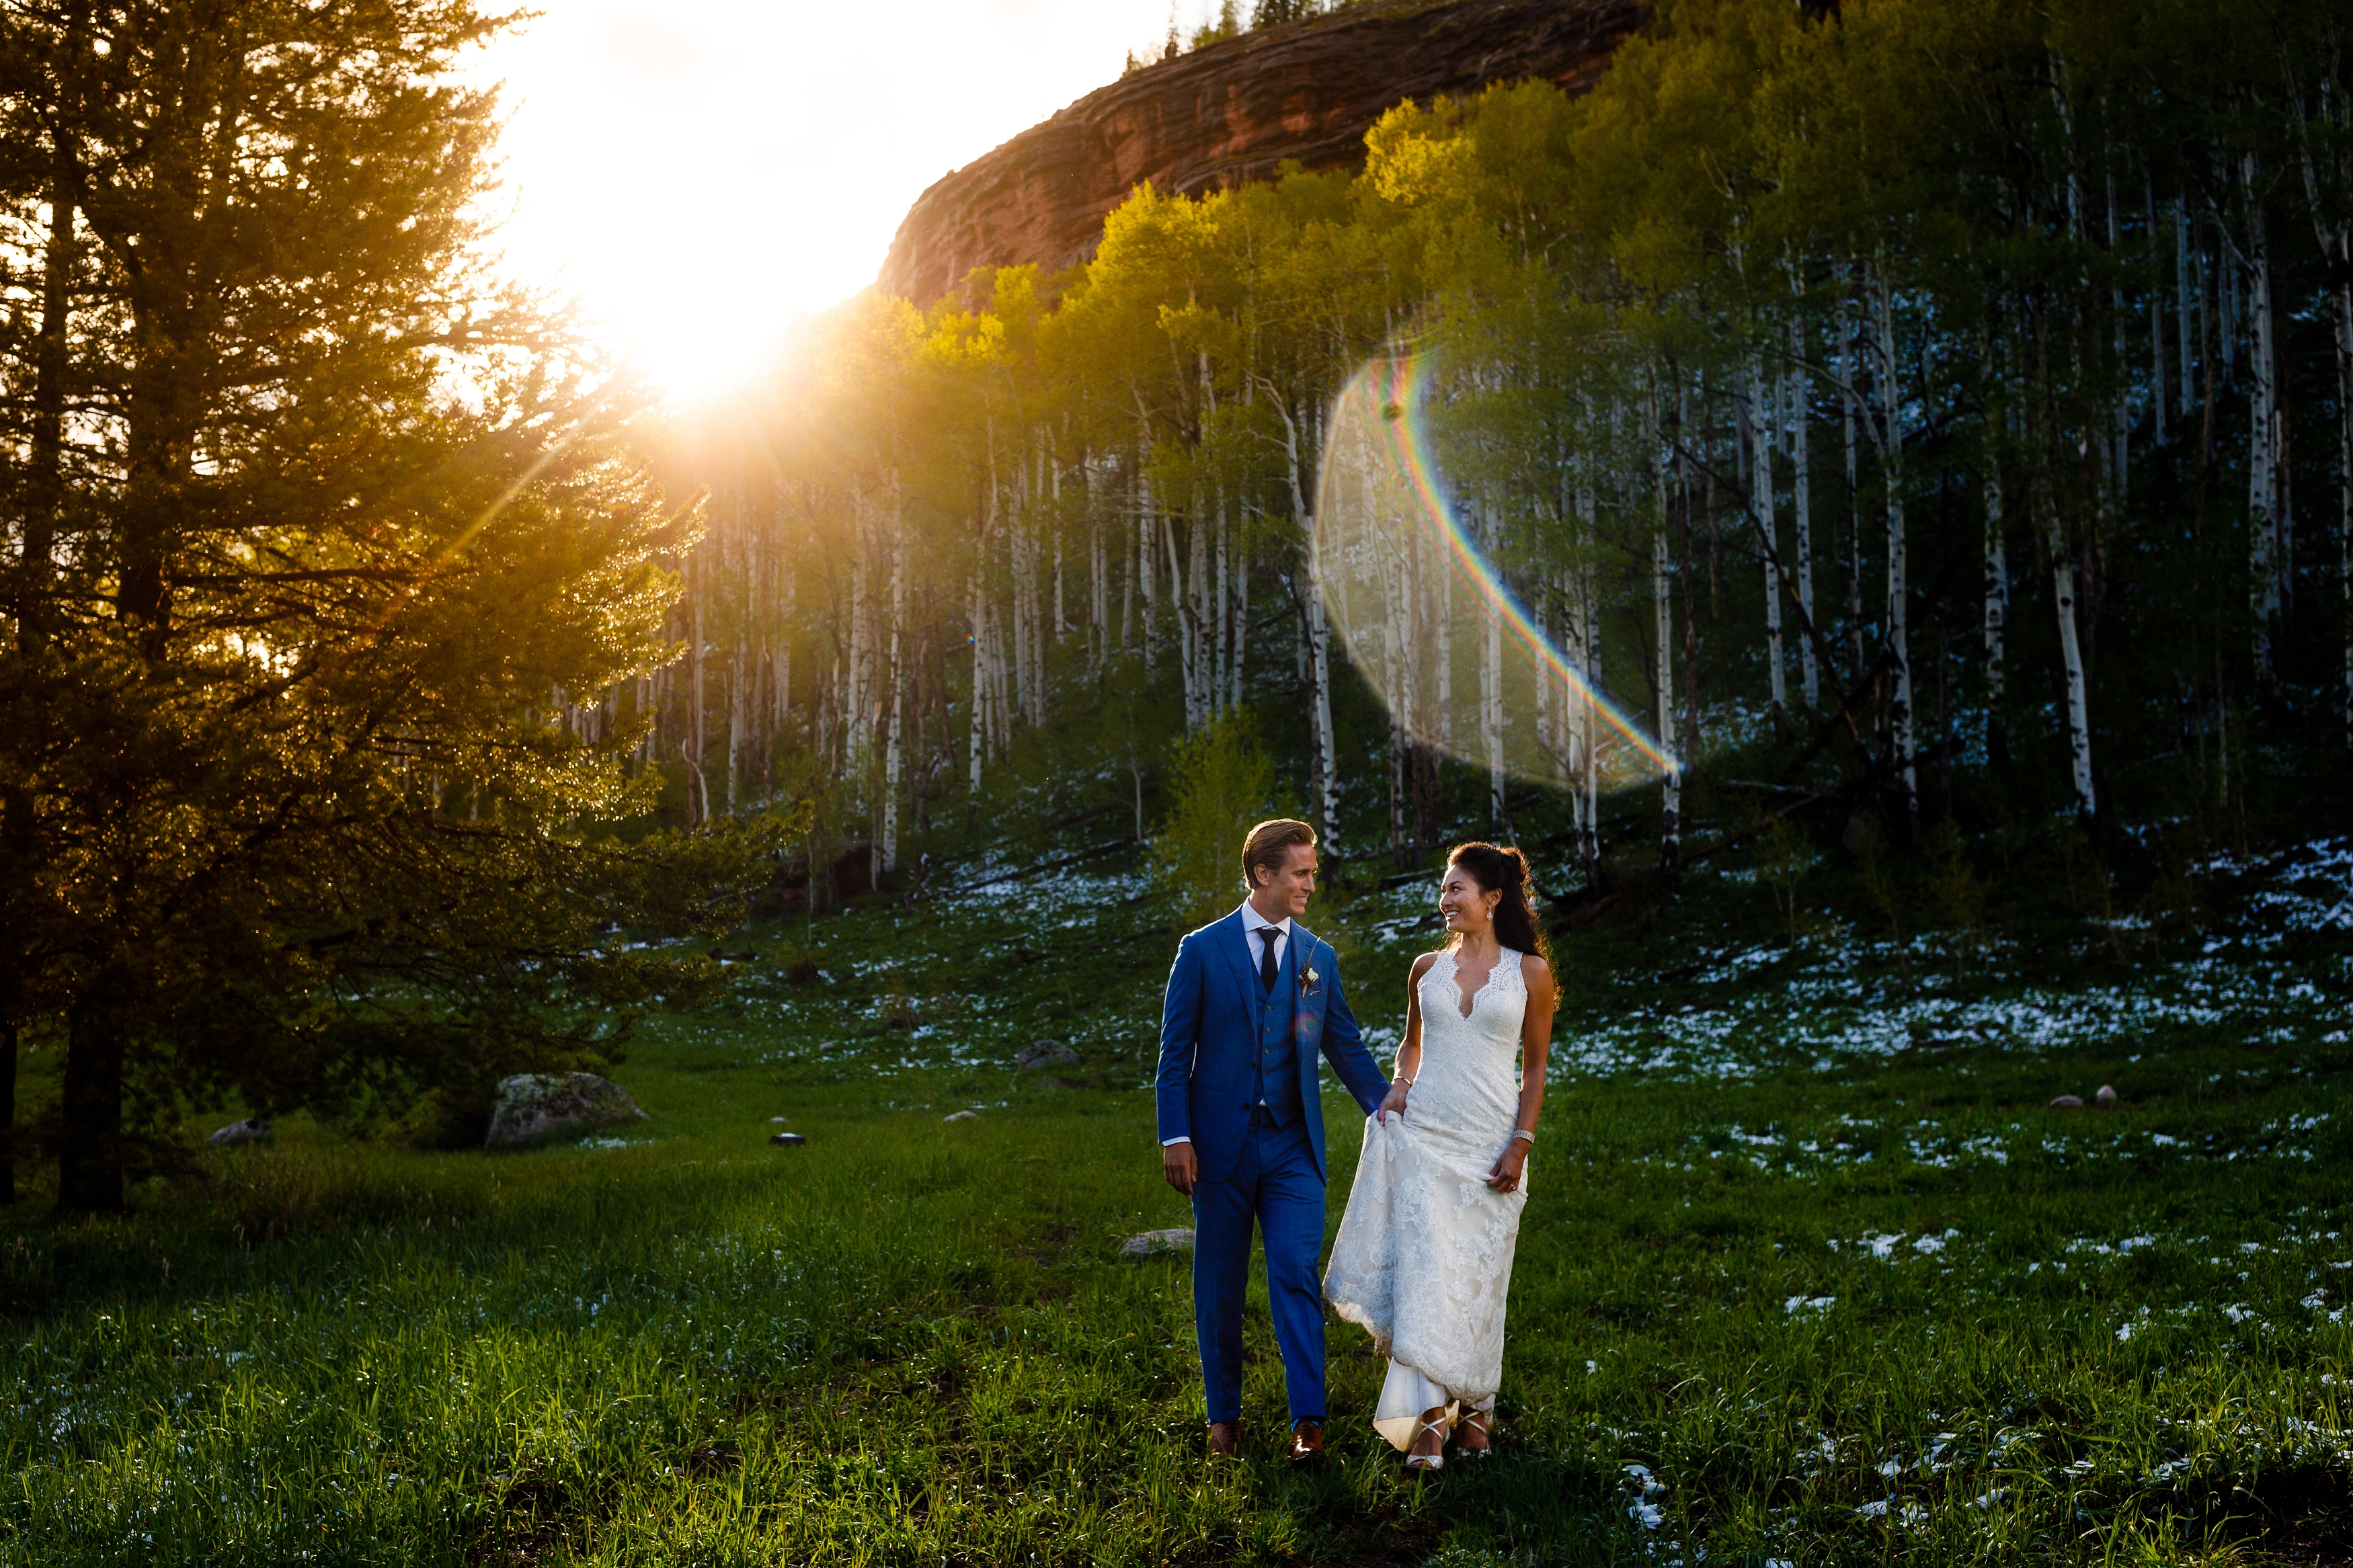 These two newlyweds take a stroll for the last bits of sunlight during their June wedding at Piney River Ranch just outside of Vail.